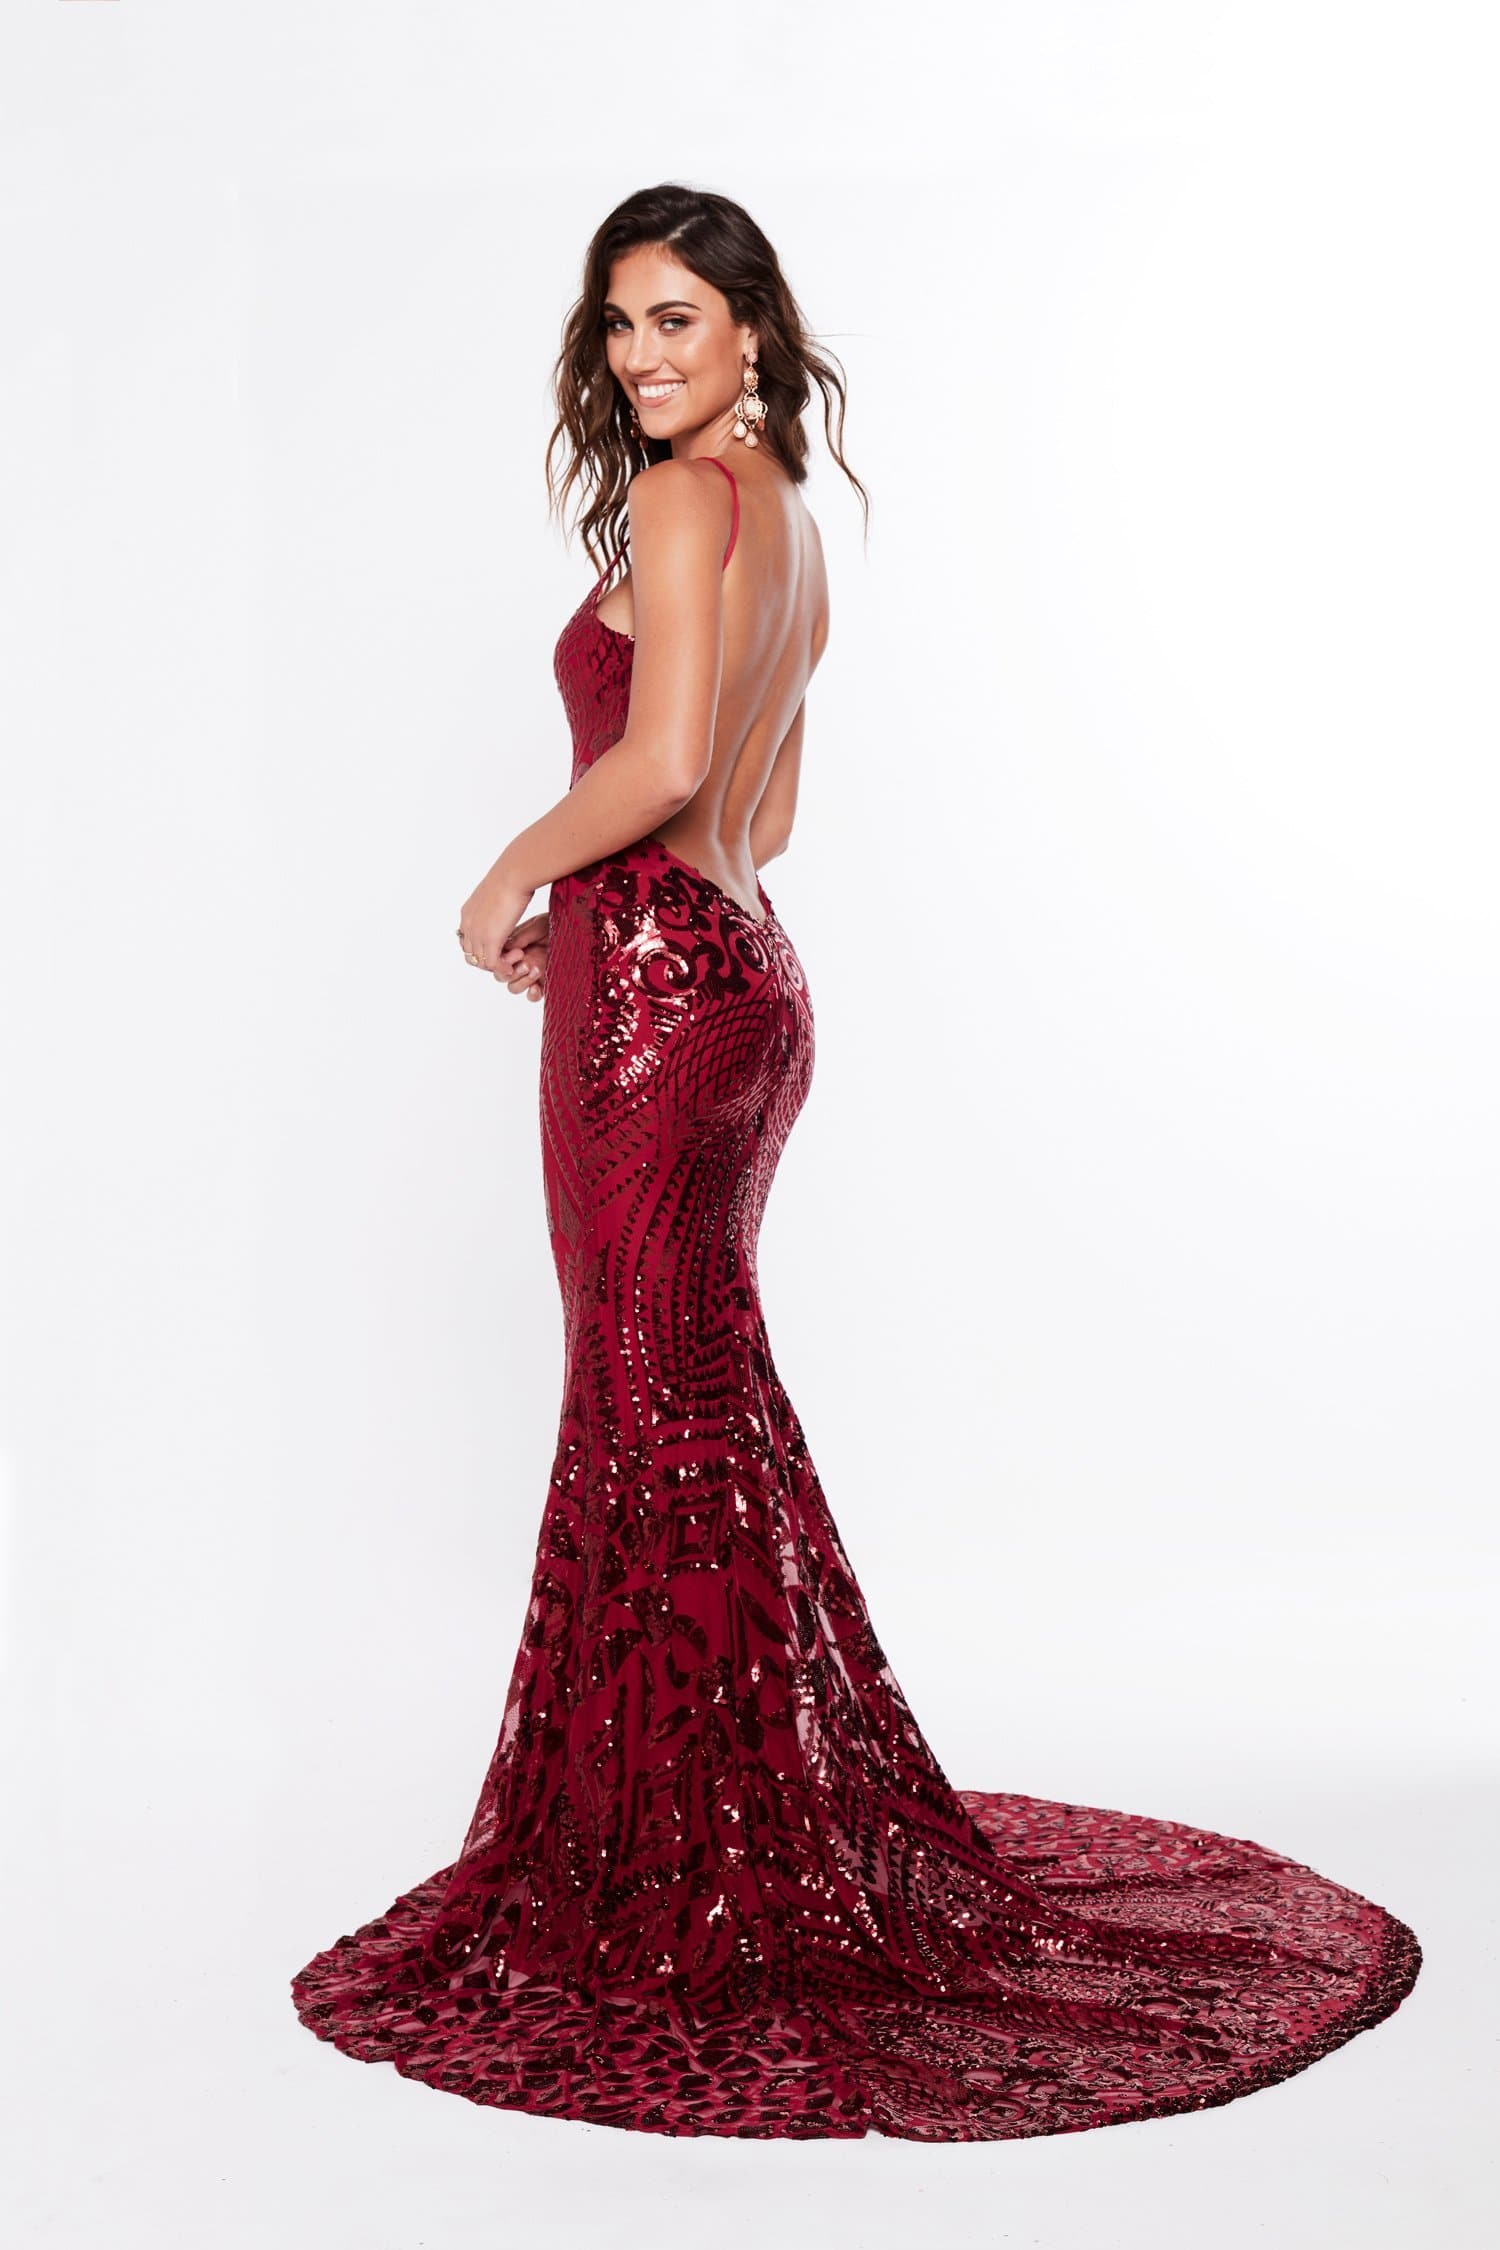 A&N Mariana - Burgundy Sequin Gown with Low Back